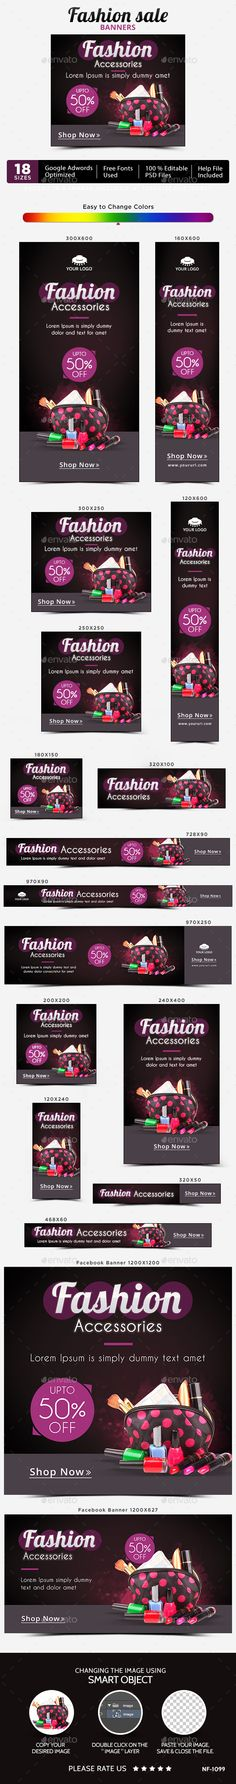 Fashion Accessories Web Banners Template PSD. Download here: http://graphicriver.net/item/fashion-accessories-banners/15014414?ref=ksioks